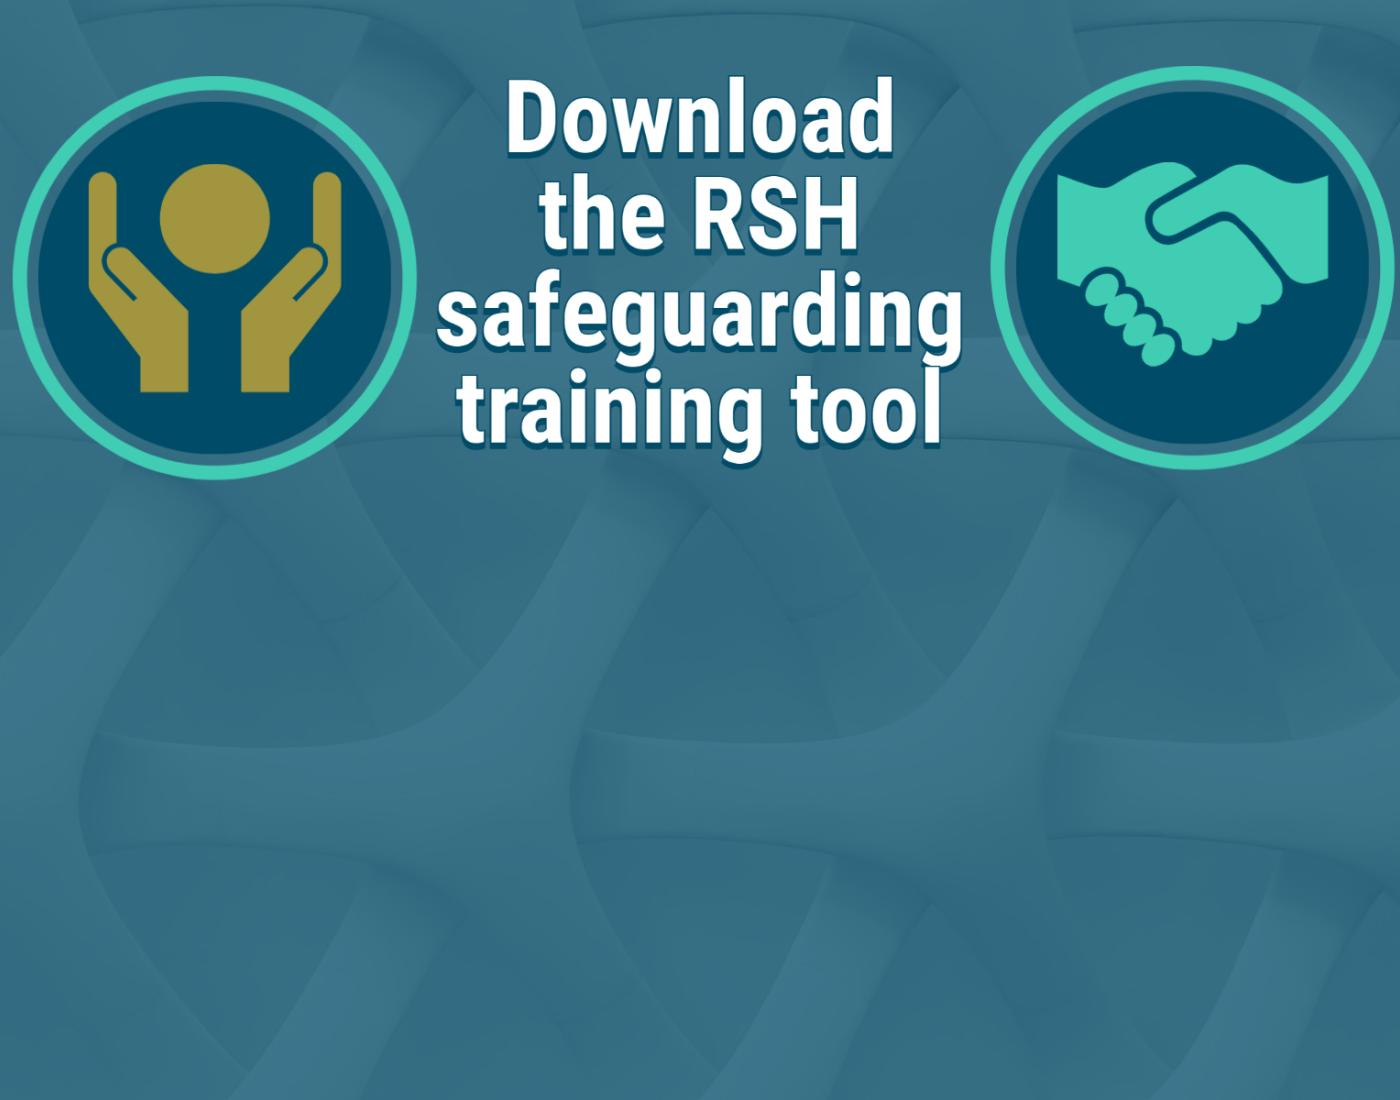 download the training tool